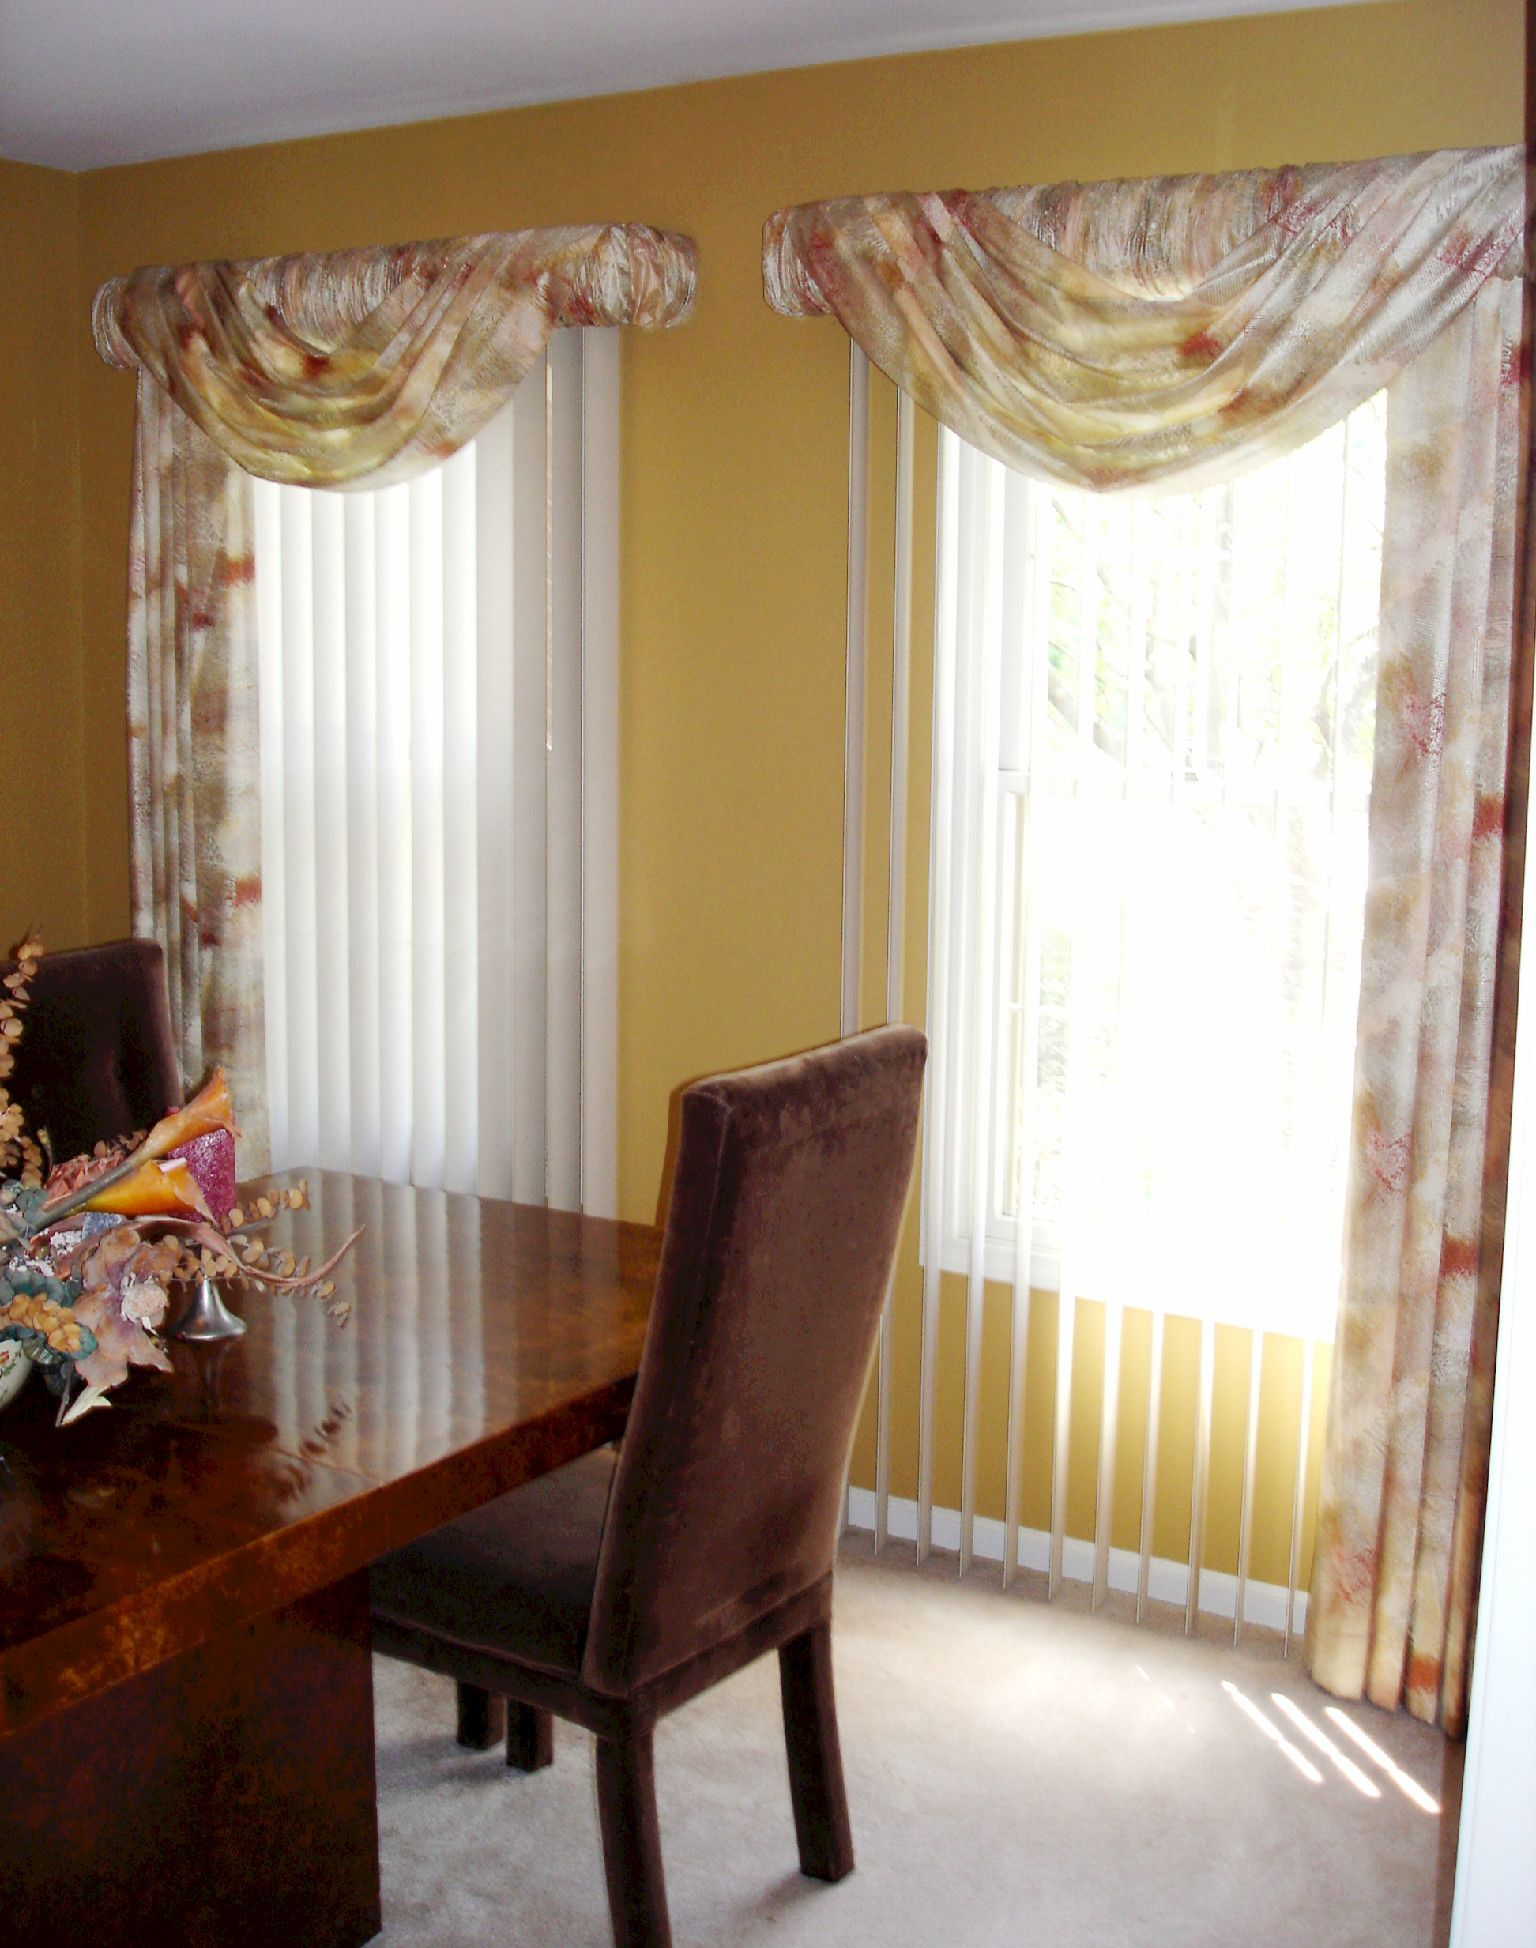 Swags Over Vertical Blinds Soften Up Those Vertical Blinds Susan 39 S Designs Decorating Over